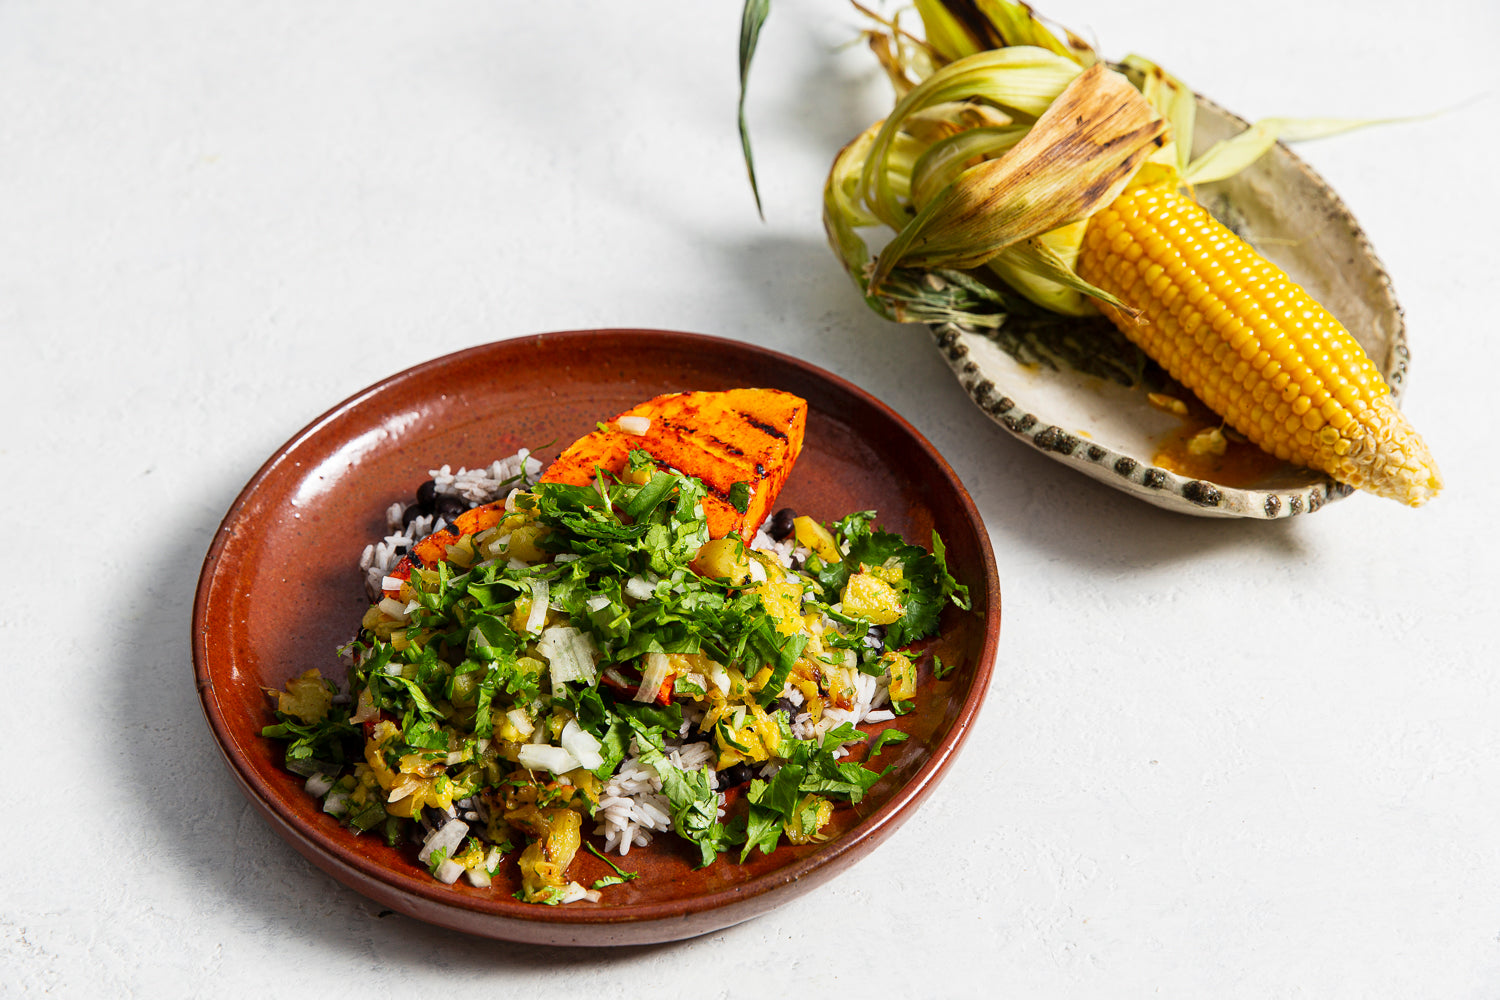 Chargrilled pumpkin, black beans, rice, pineapple salsa